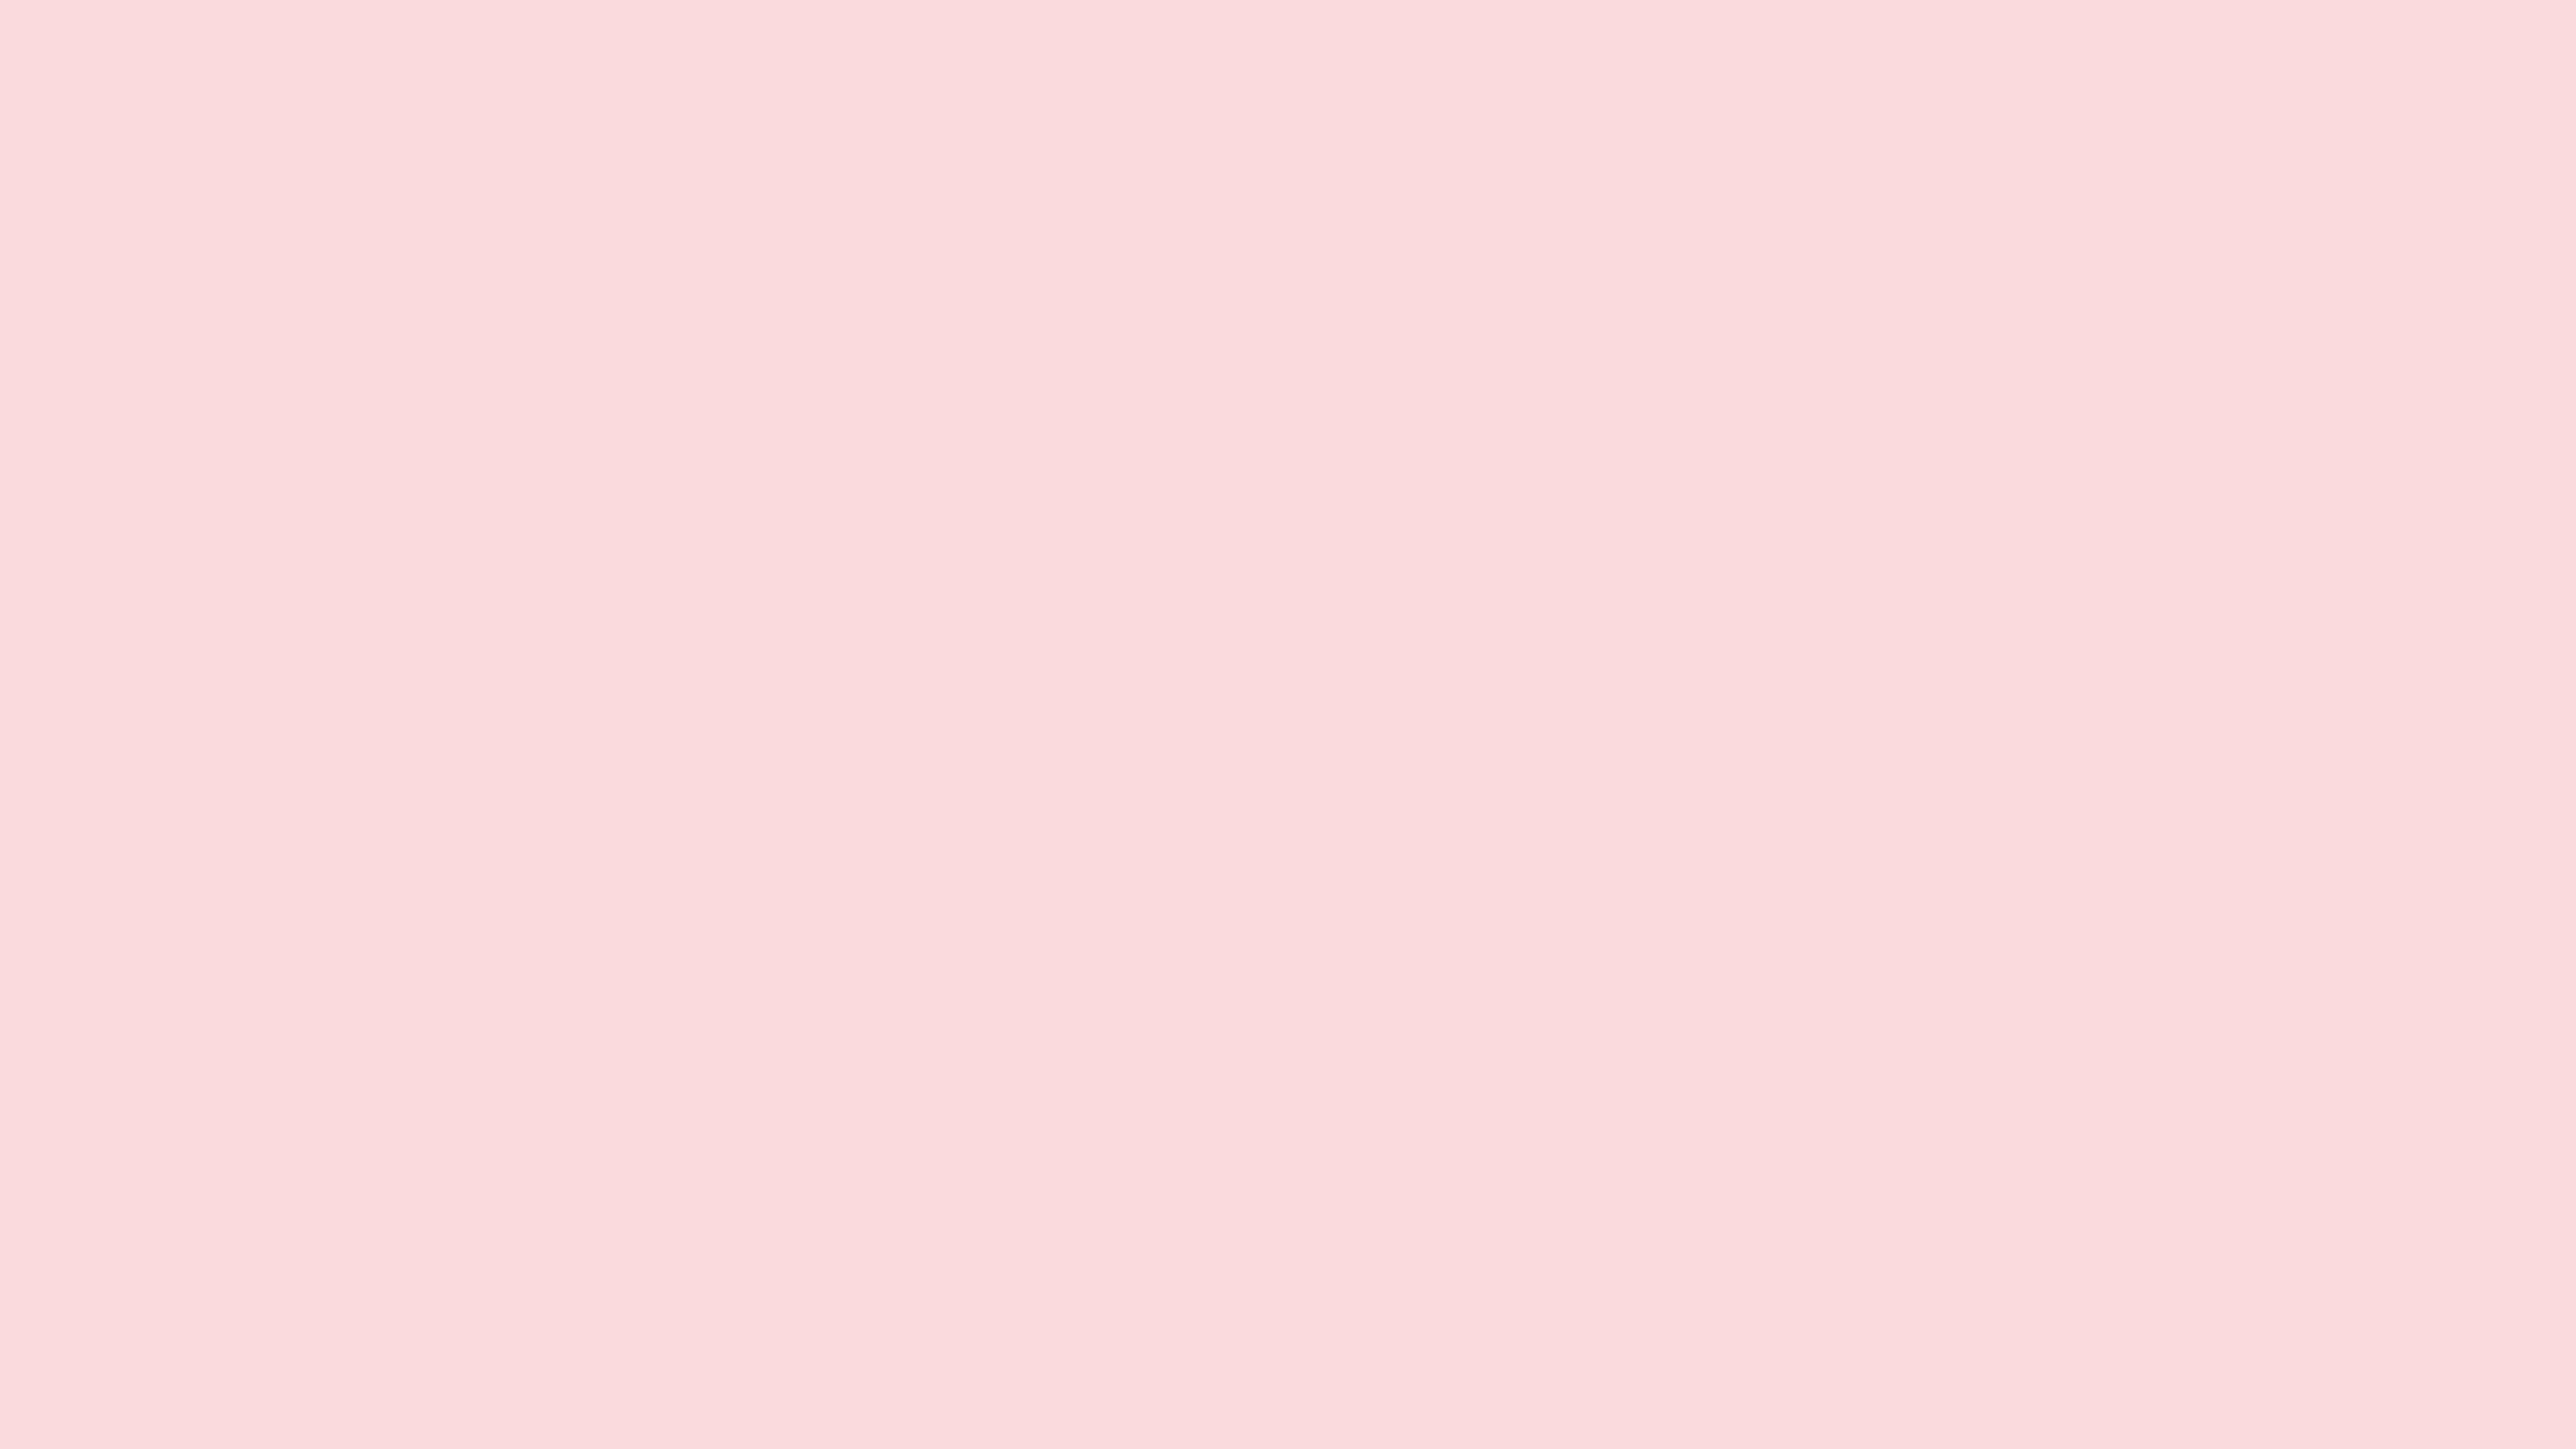 3840x2160 Pale Pink Solid Color Background